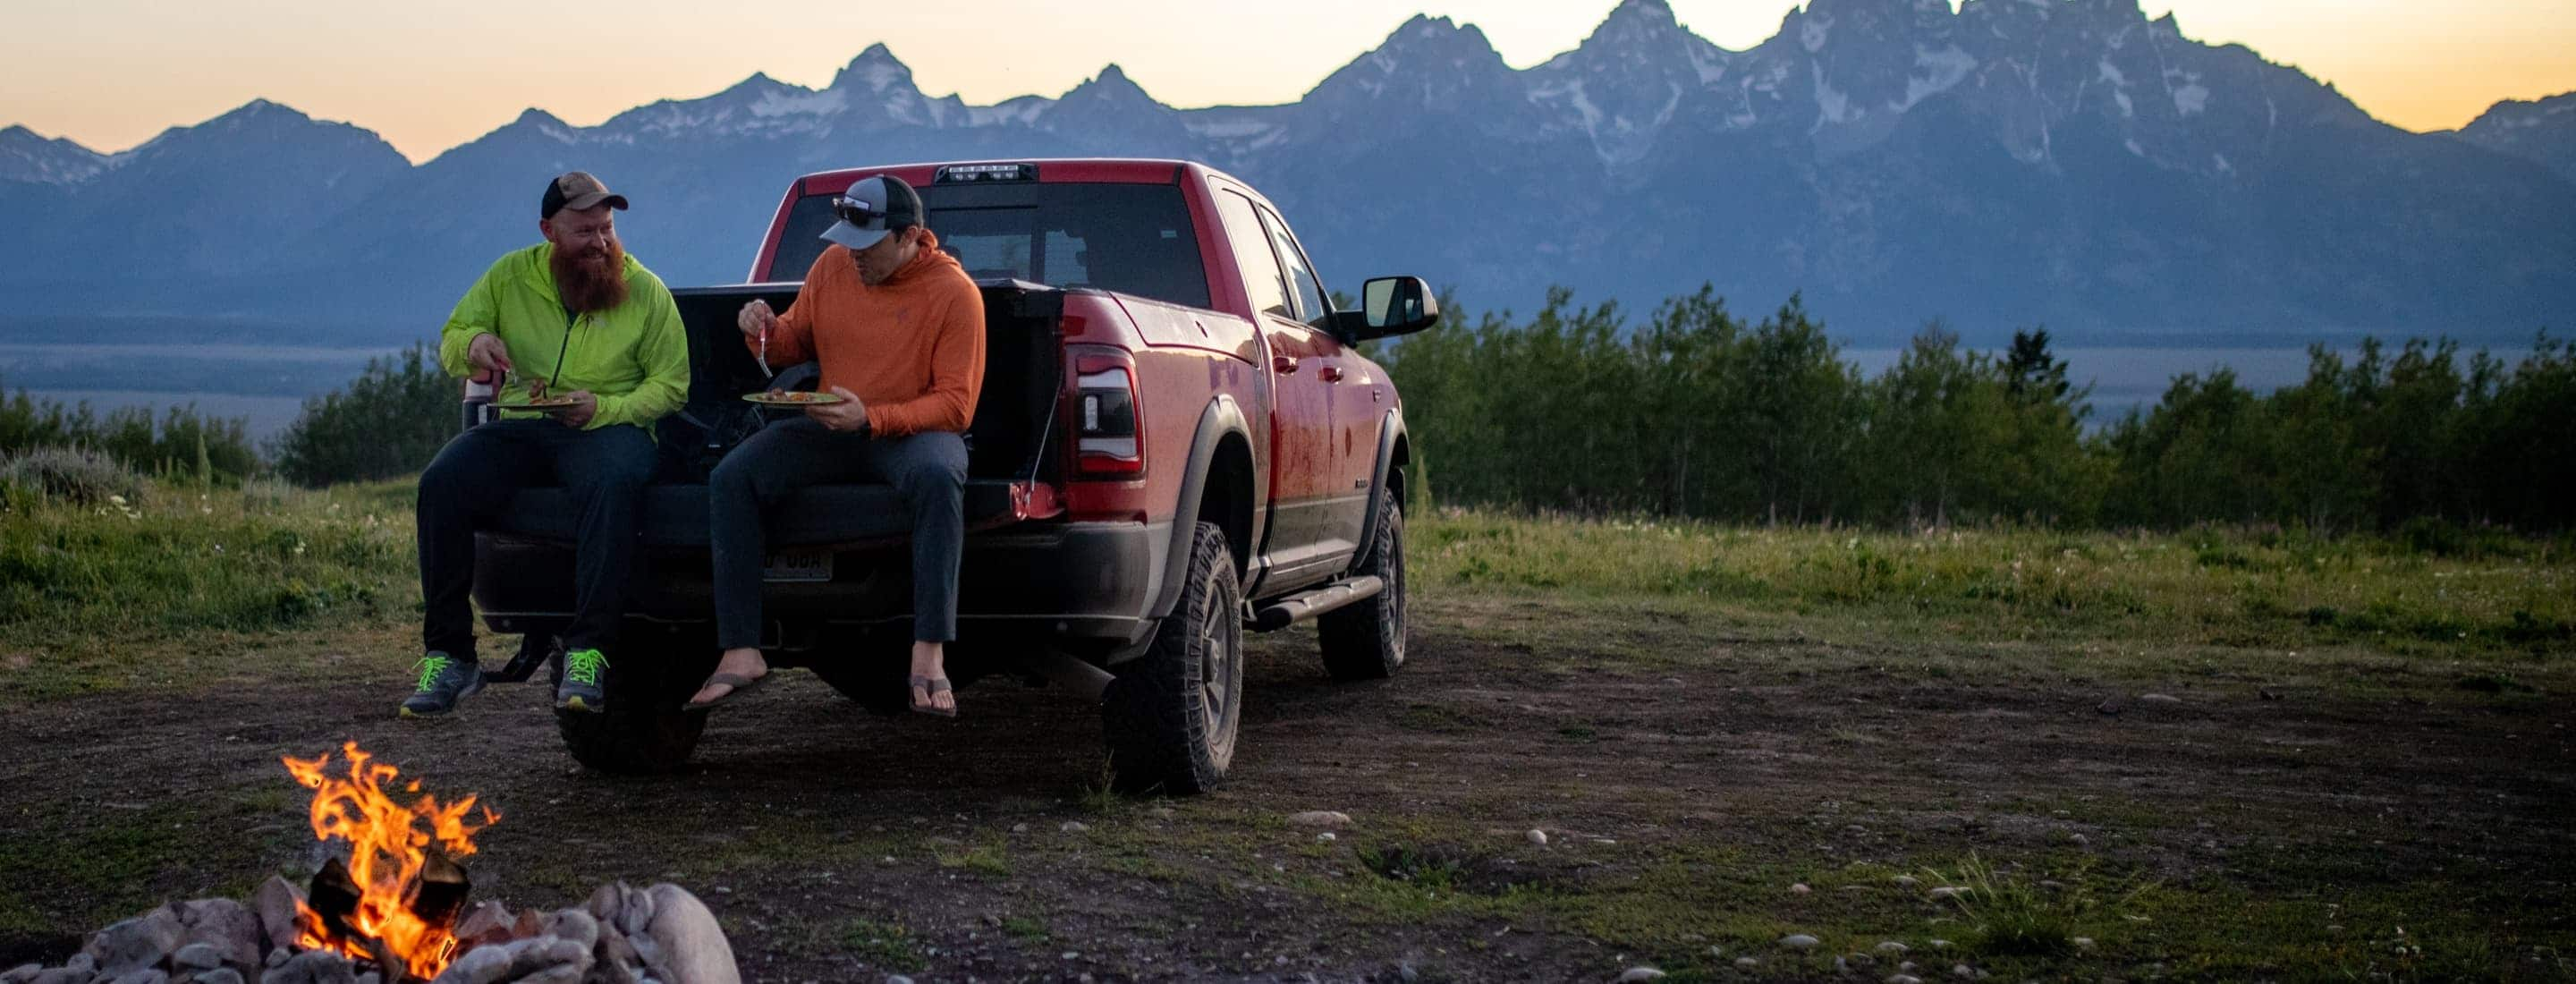 Jake Frank and Andy Austin sitting on the lowered tailgate of Jake's 2019 Ram 2500, eating dinner.